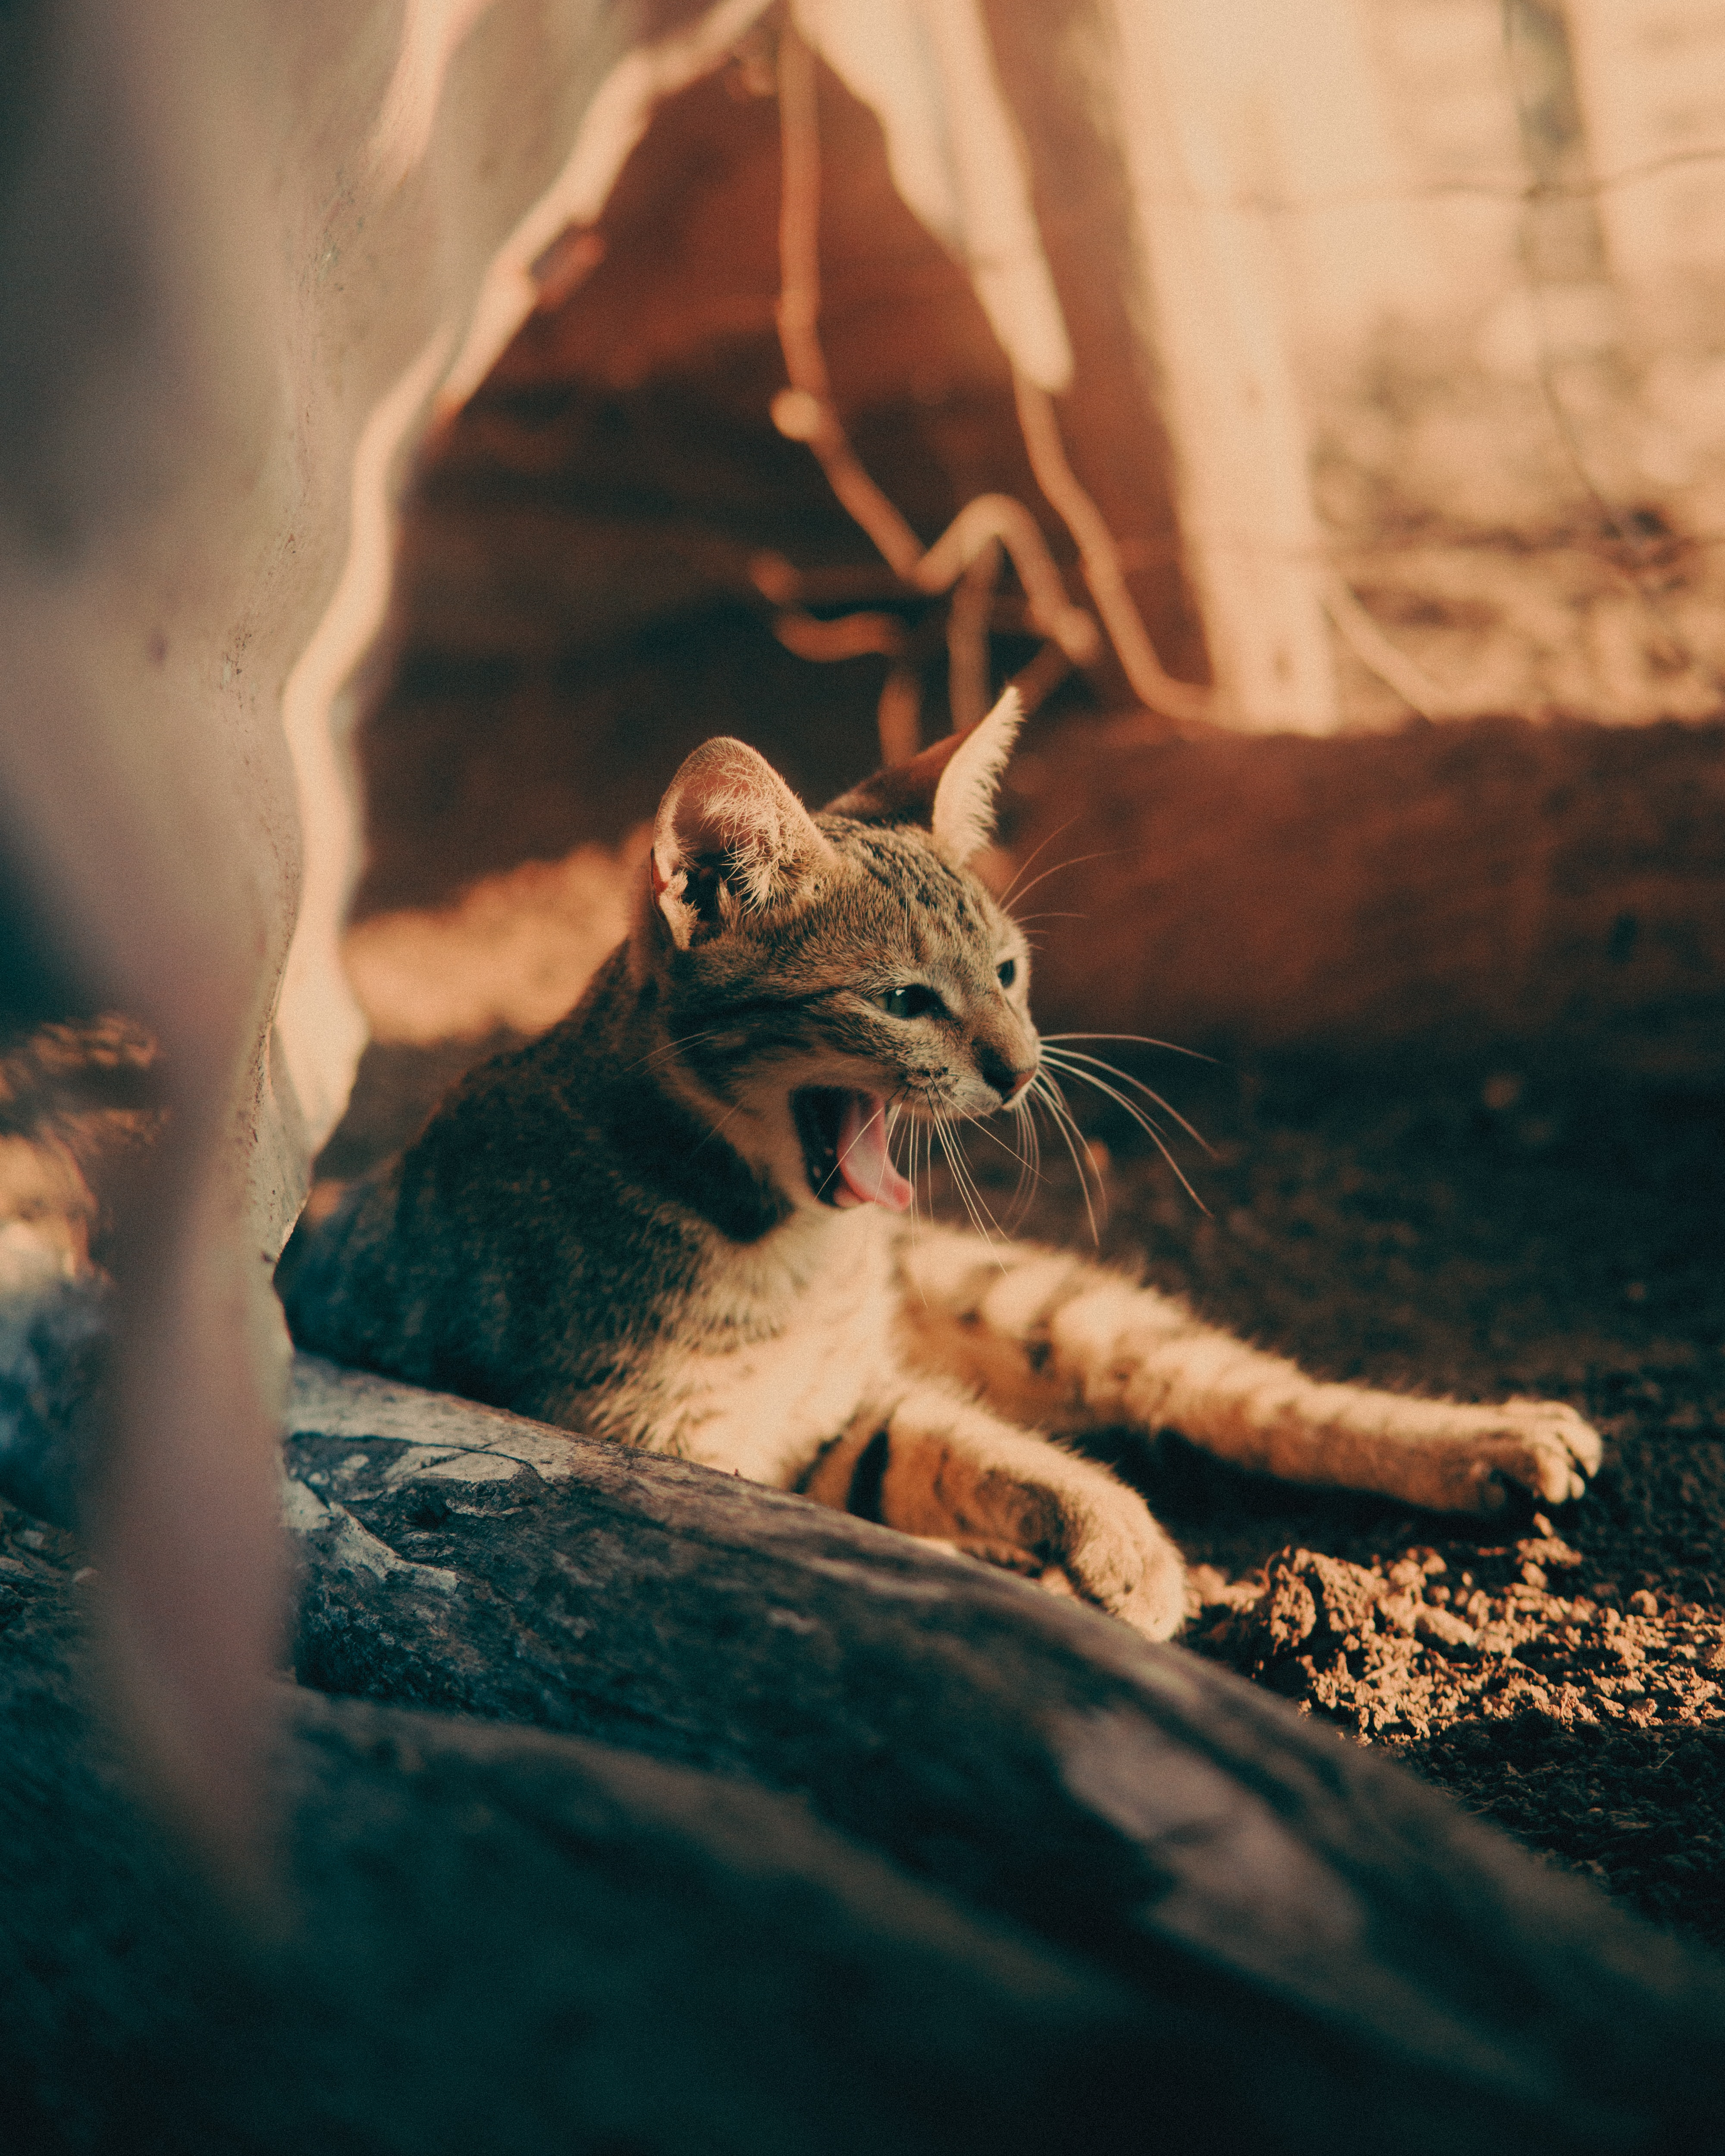 64501 download wallpaper Animals, Cat, Zev, Throat, Protruding Tongue, Tongue Stuck Out, Pet screensavers and pictures for free